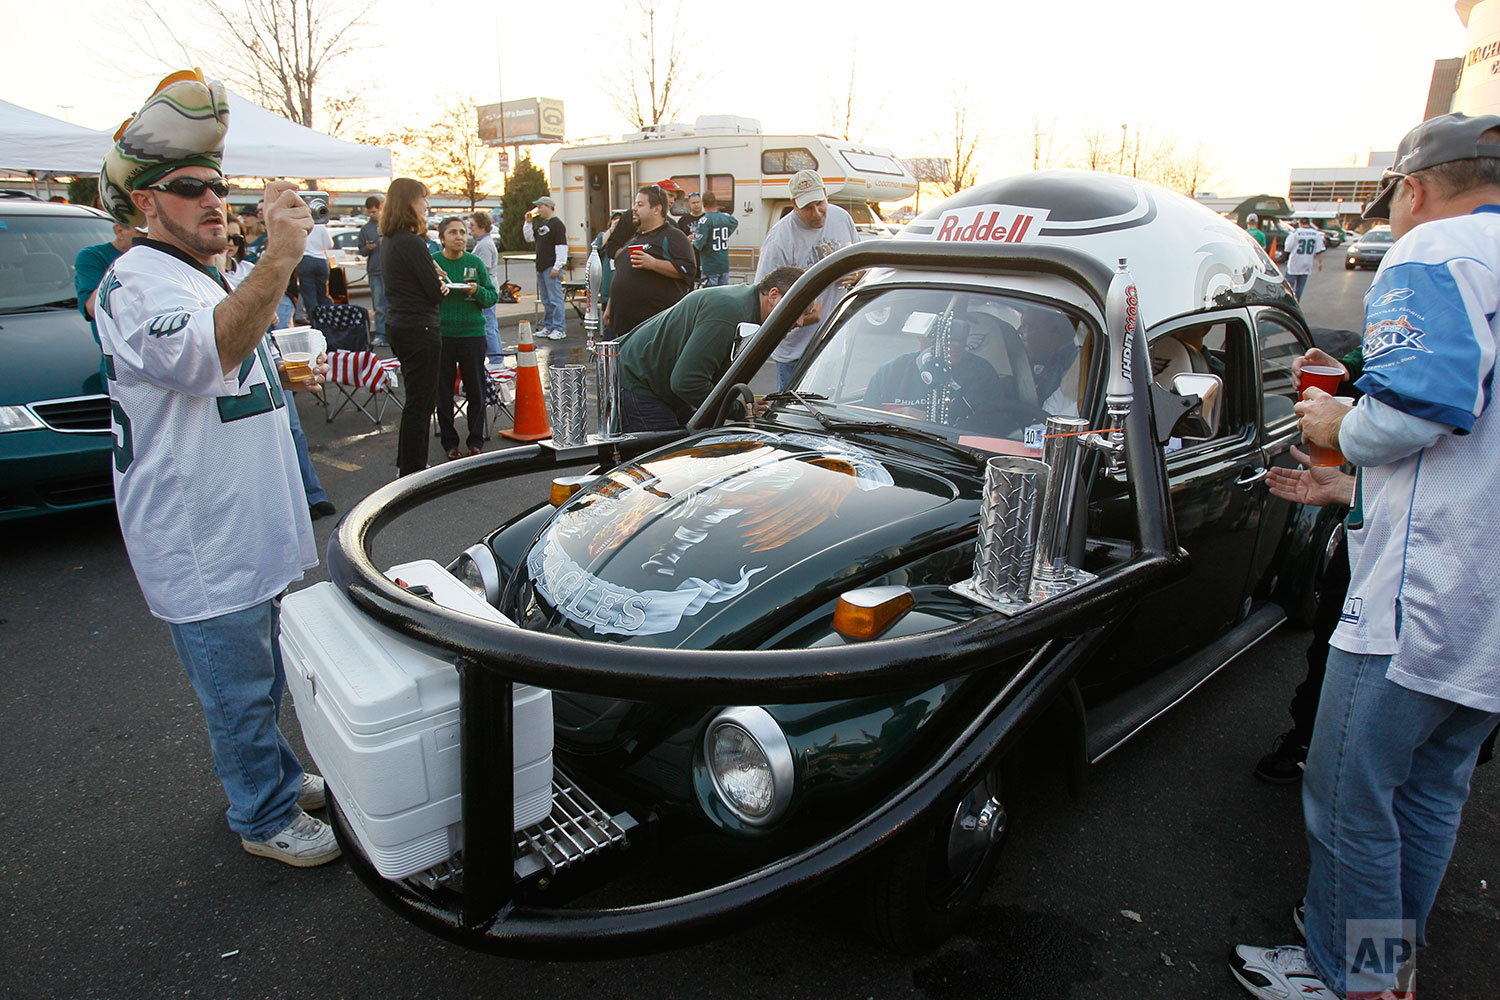 Philadelphia Eagles fans show off their customized Volkswagen Beetle before an NFL football game against the Dallas Cowboys, Nov. 8, 2009, in Philadelphia. (AP Photo/Matt Slocum)